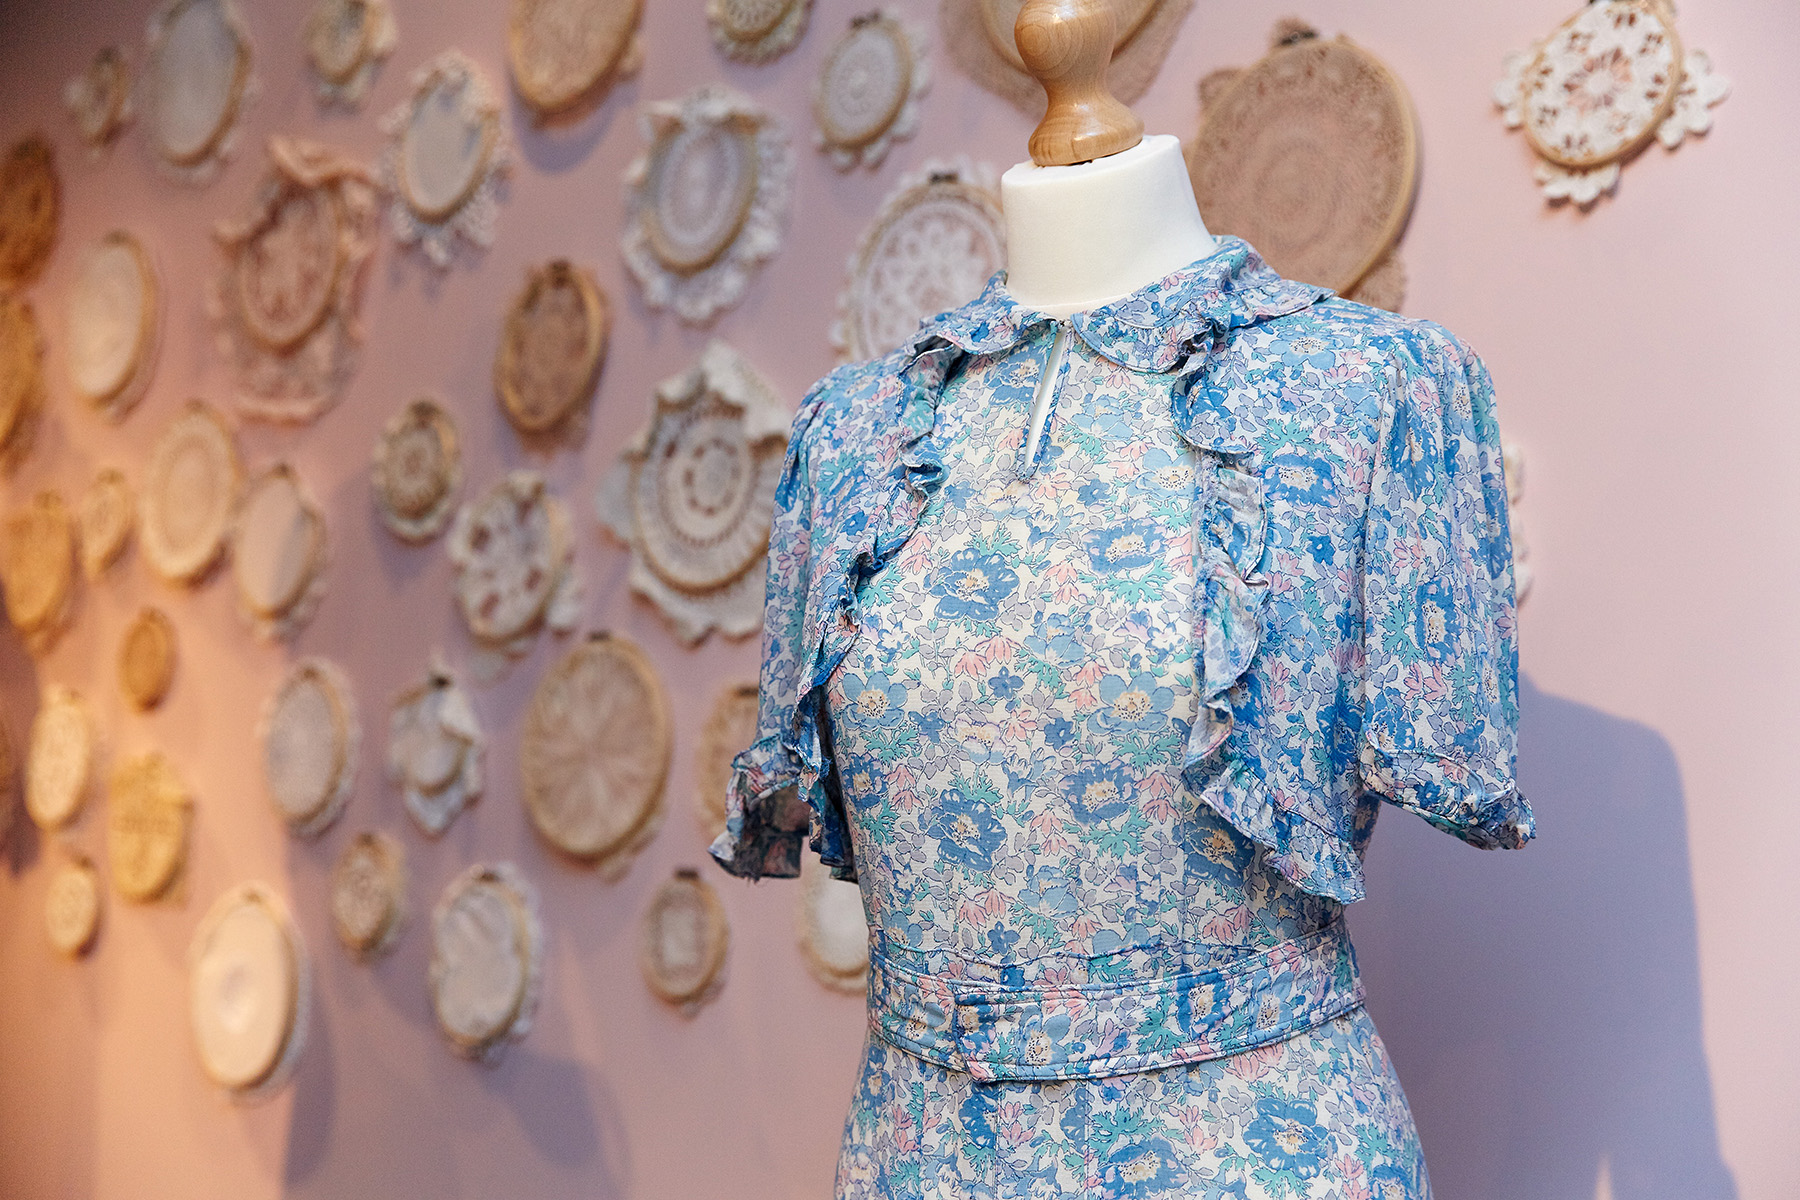 LIBERTY Art Fabrics & Fashion Highlights Tour